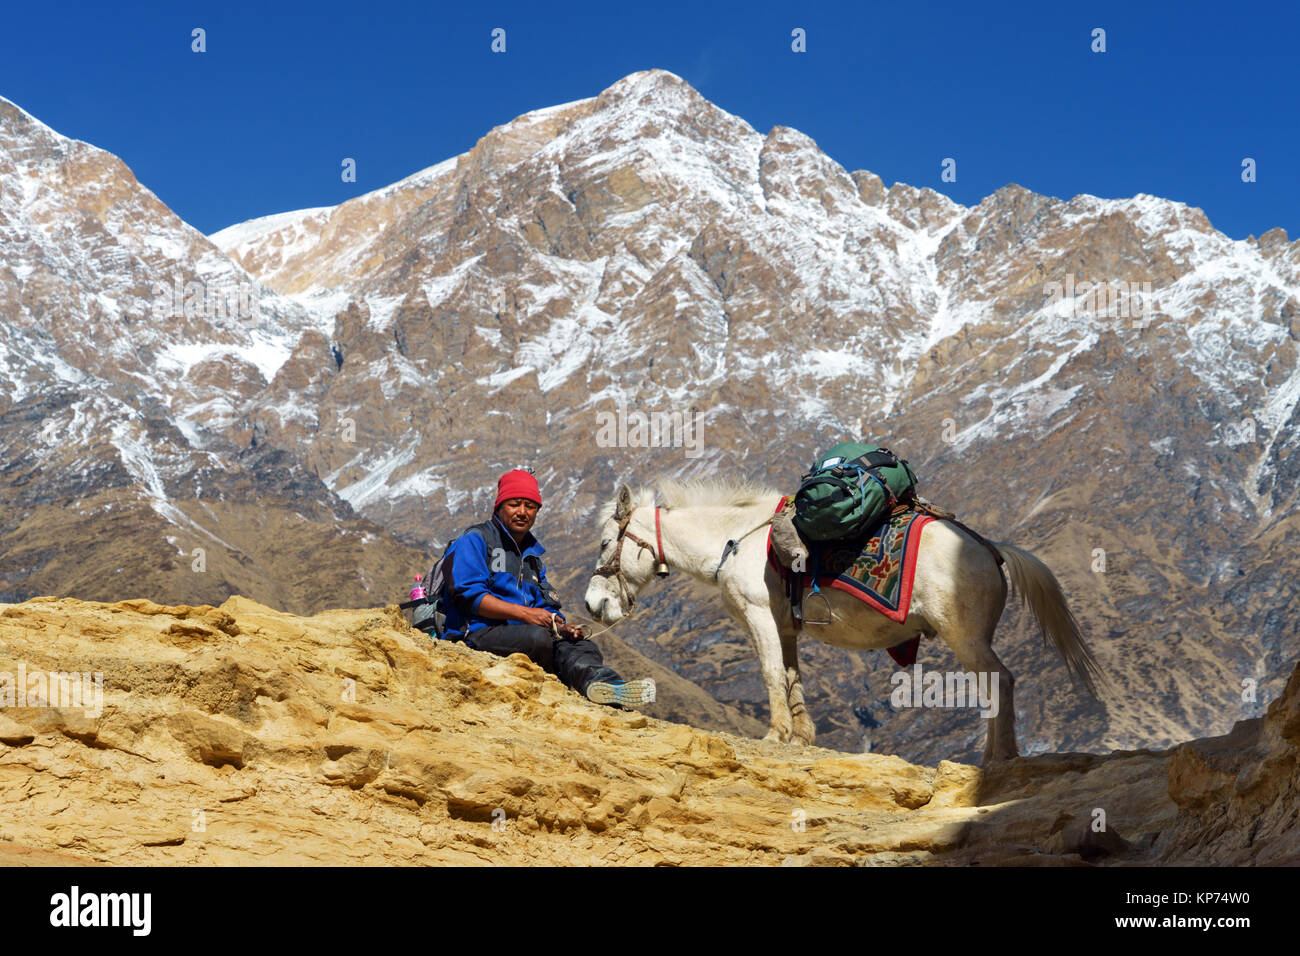 Nepalese man and his horse taking a break on the Upper Mustang trek. - Stock Image